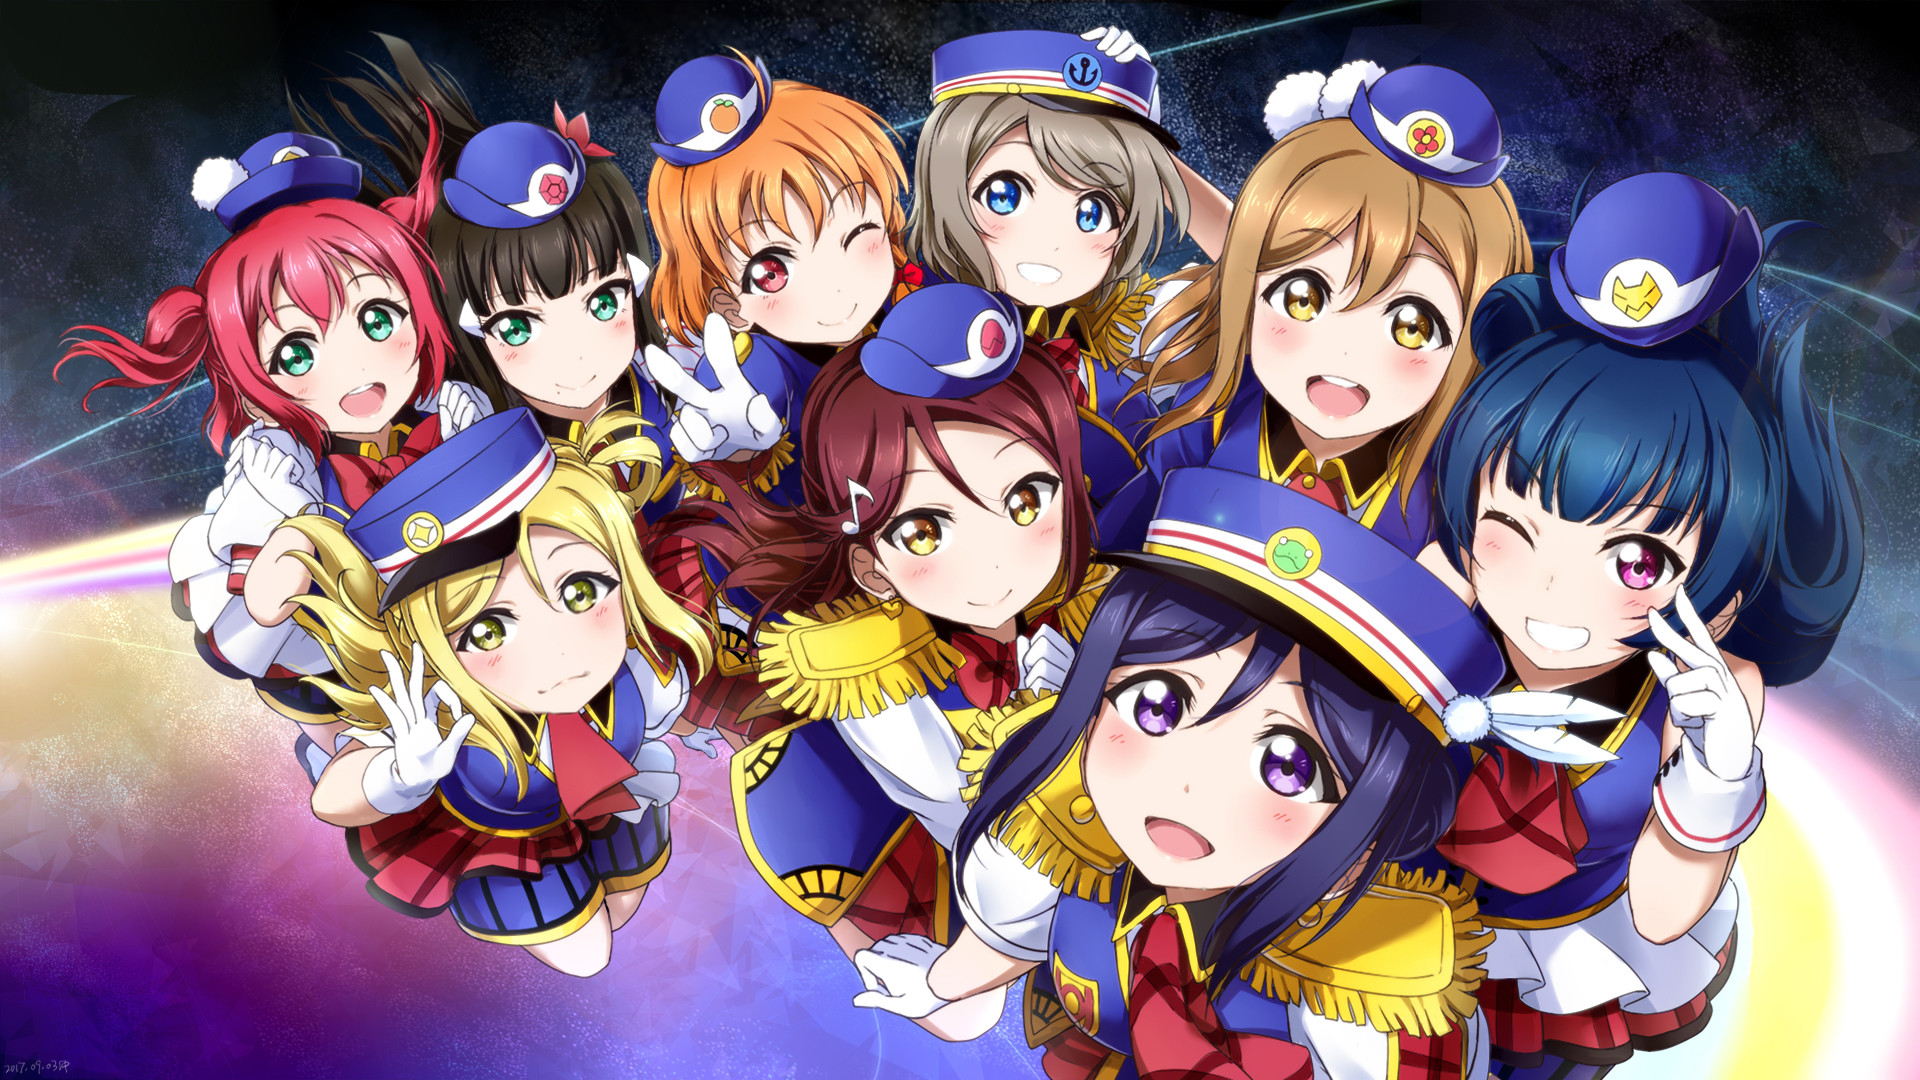 Res: 1920x1080, Love Live! Sunshine!! Wallpapers